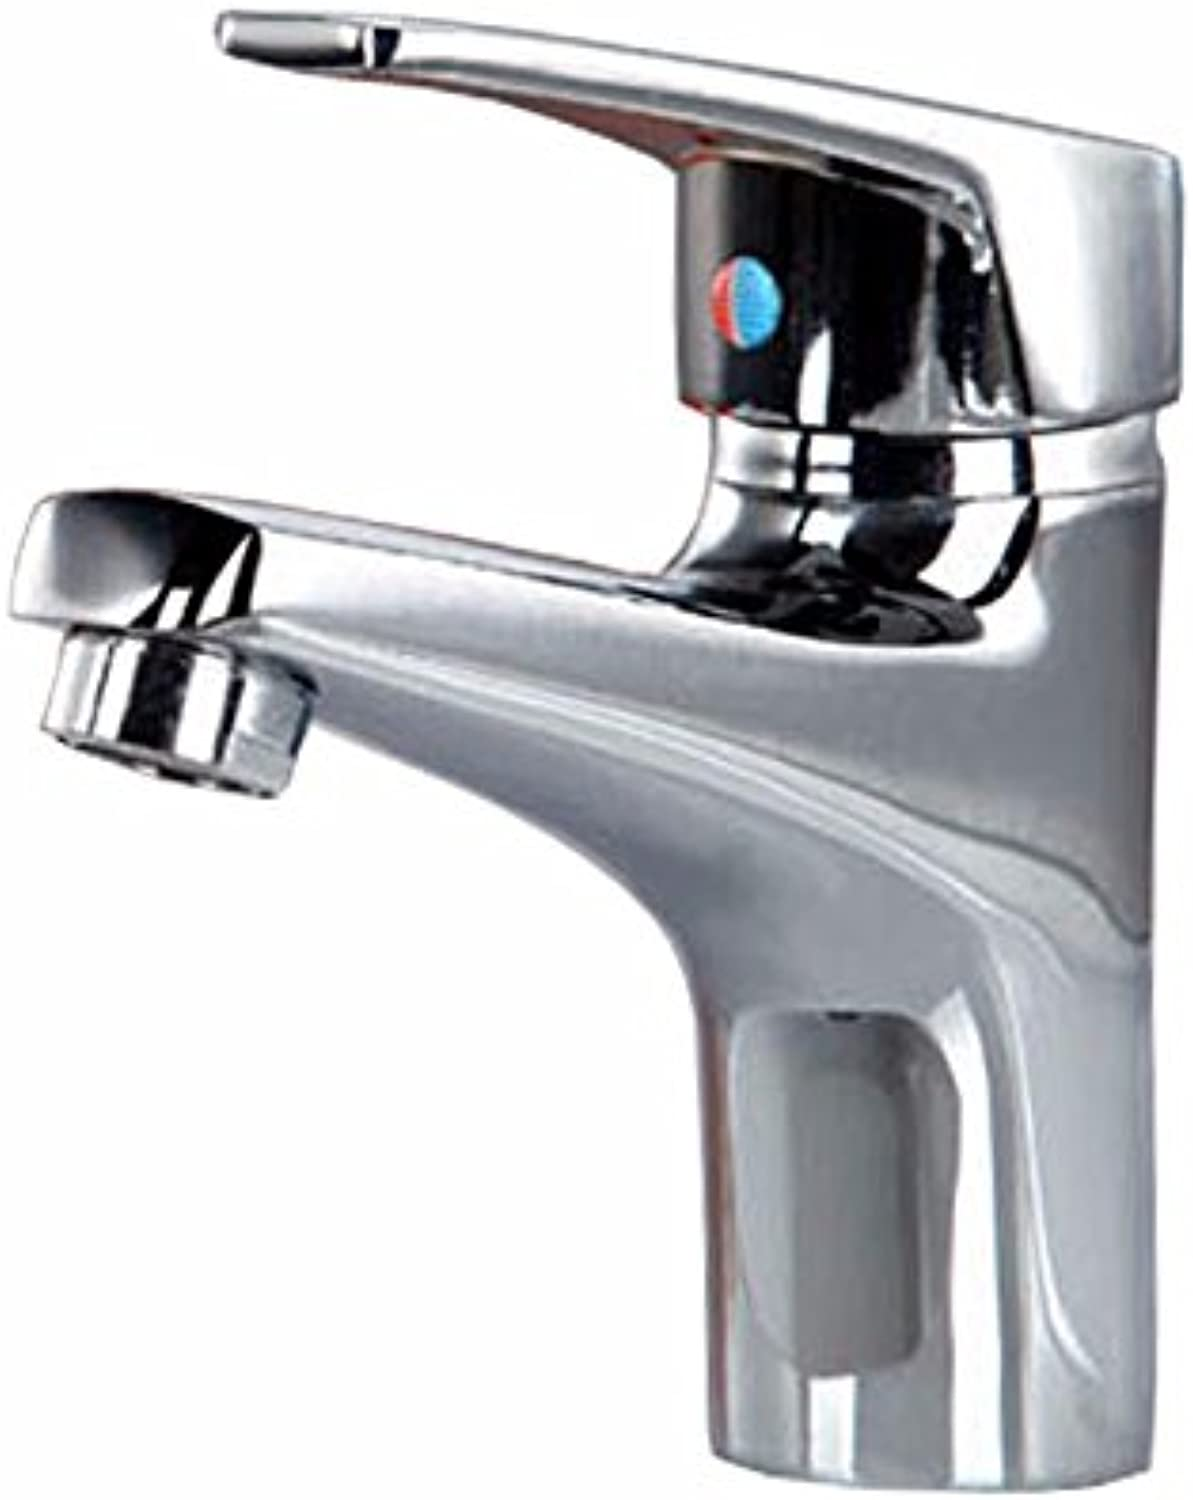 Hlluya Professional Sink Mixer Tap Kitchen Faucet Single Handle single hole and cold water faucet Bathroom Cabinet Faucet